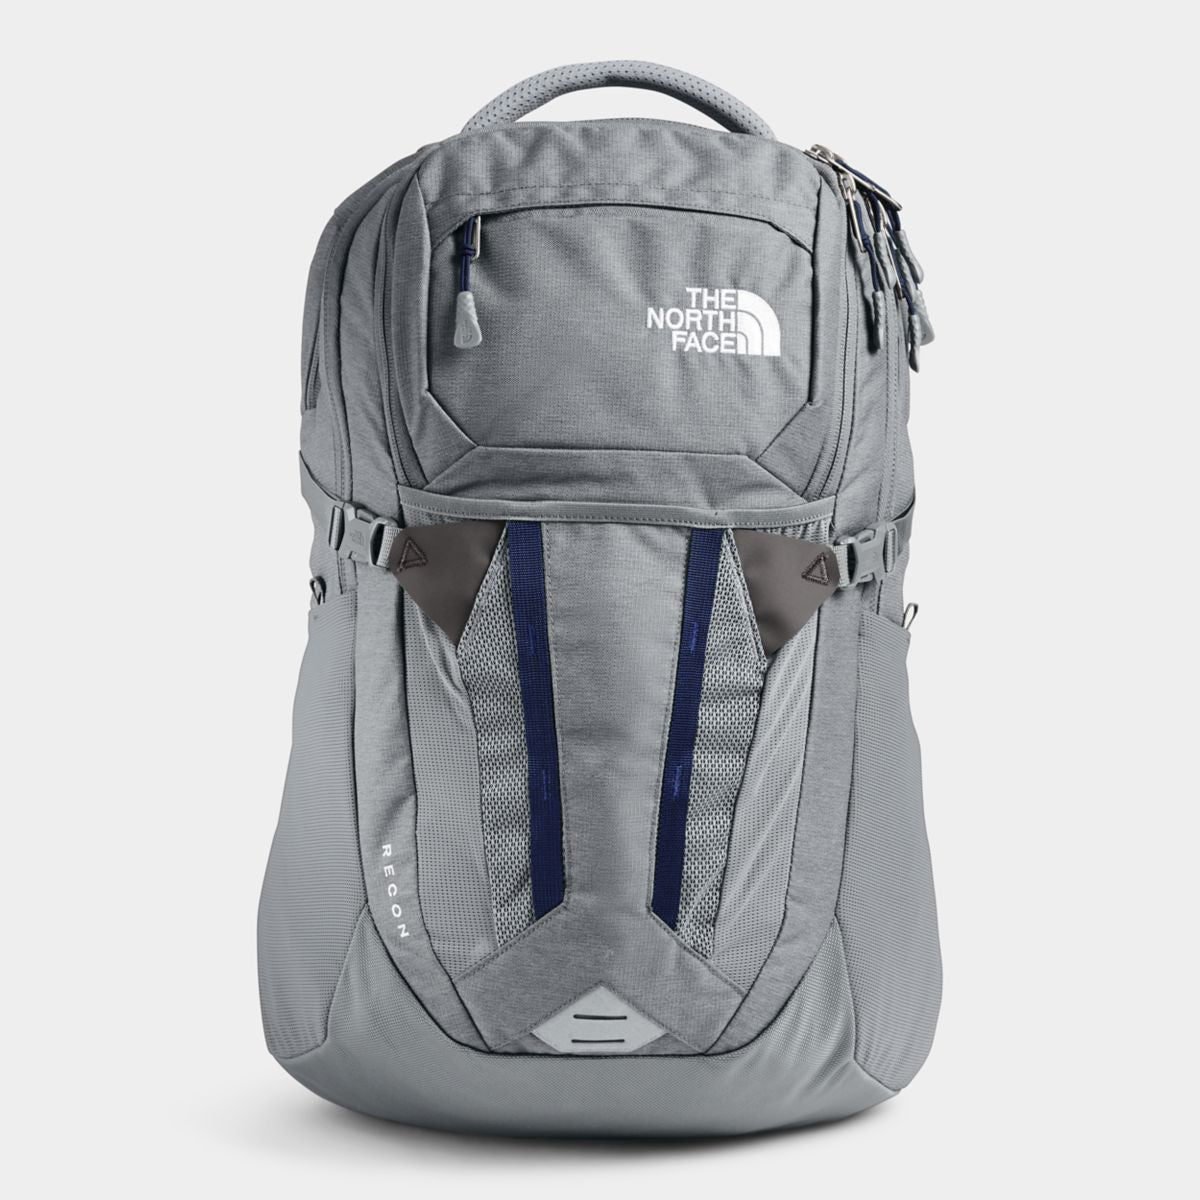 Unisex The North Face Recon Backpack in High Rise Grey Light Heather/TNF Navy from the front view